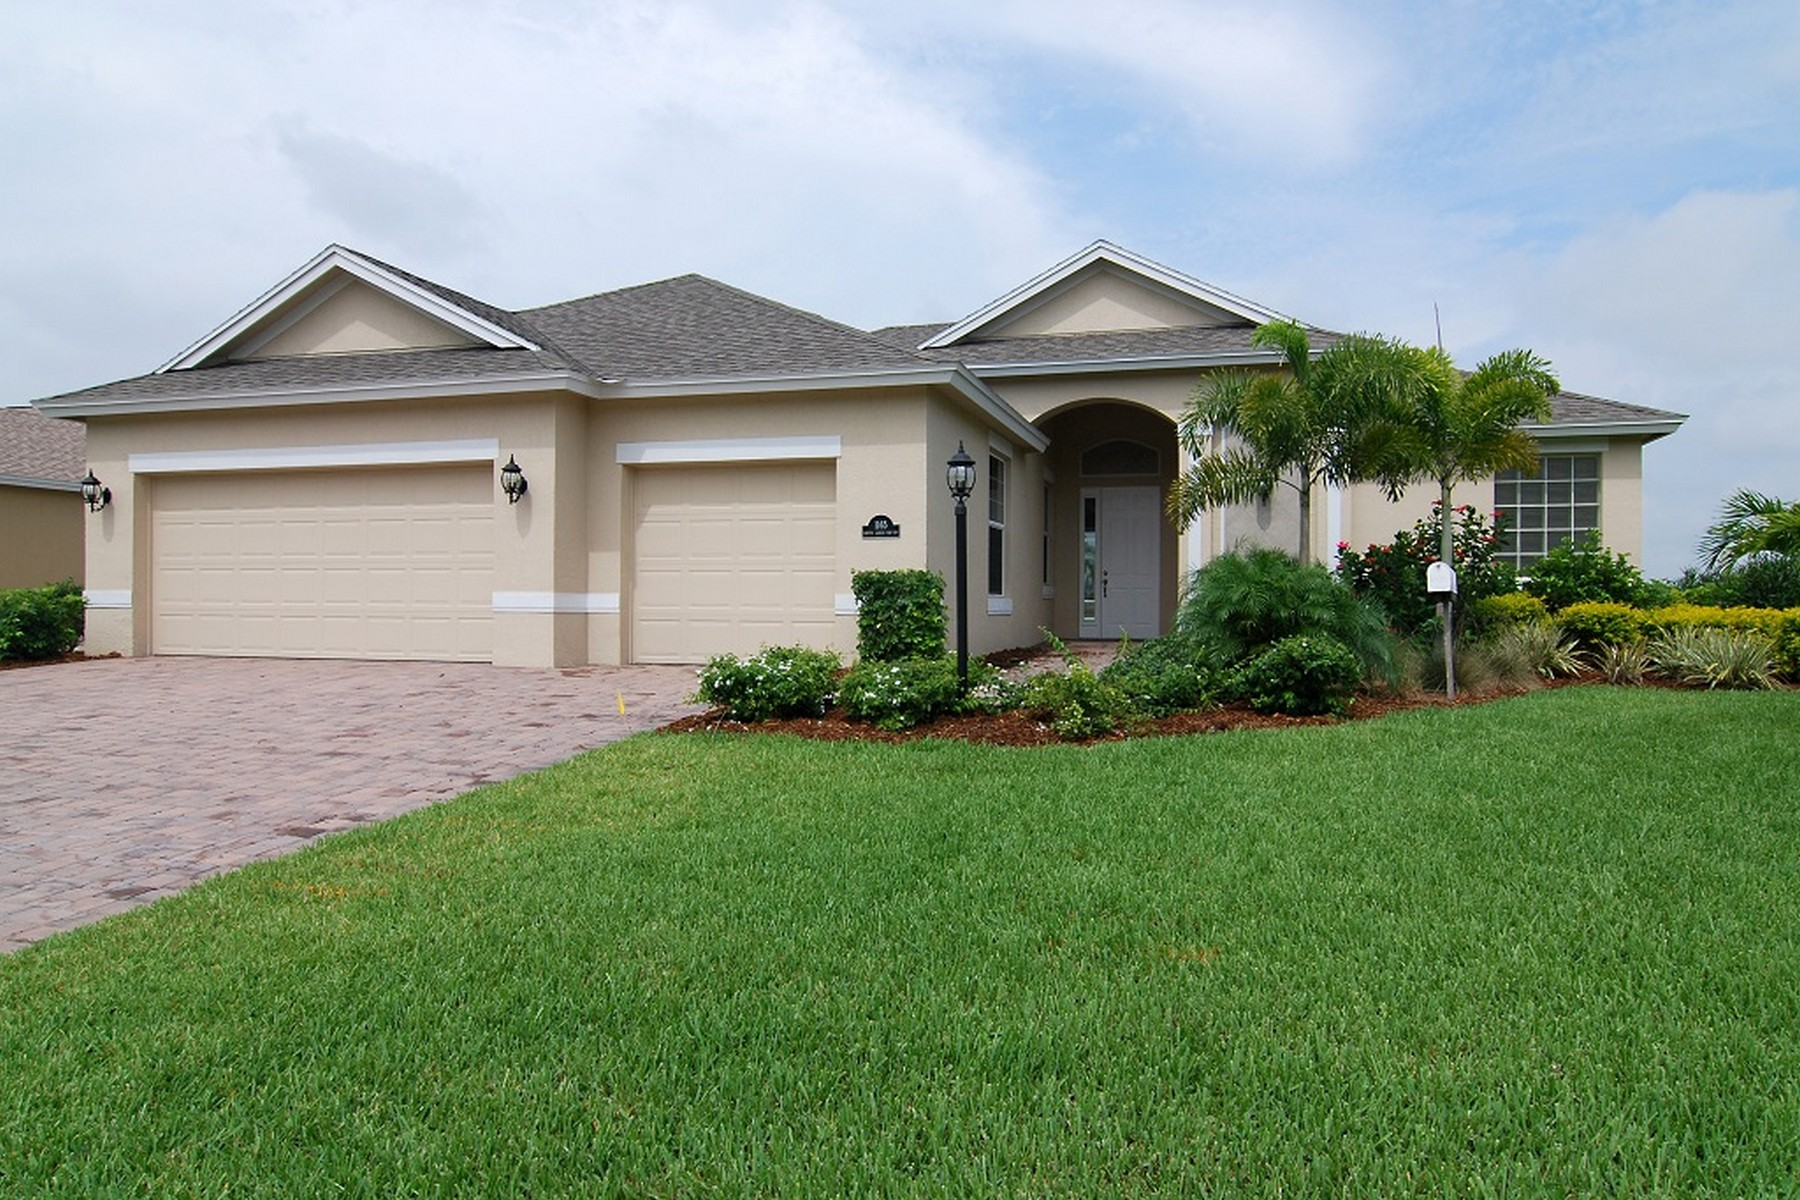 Maison unifamiliale pour l Vente à The Columbia Model 4472 Gagnon Road Port St. Lucie, Florida, 34953 États-Unis